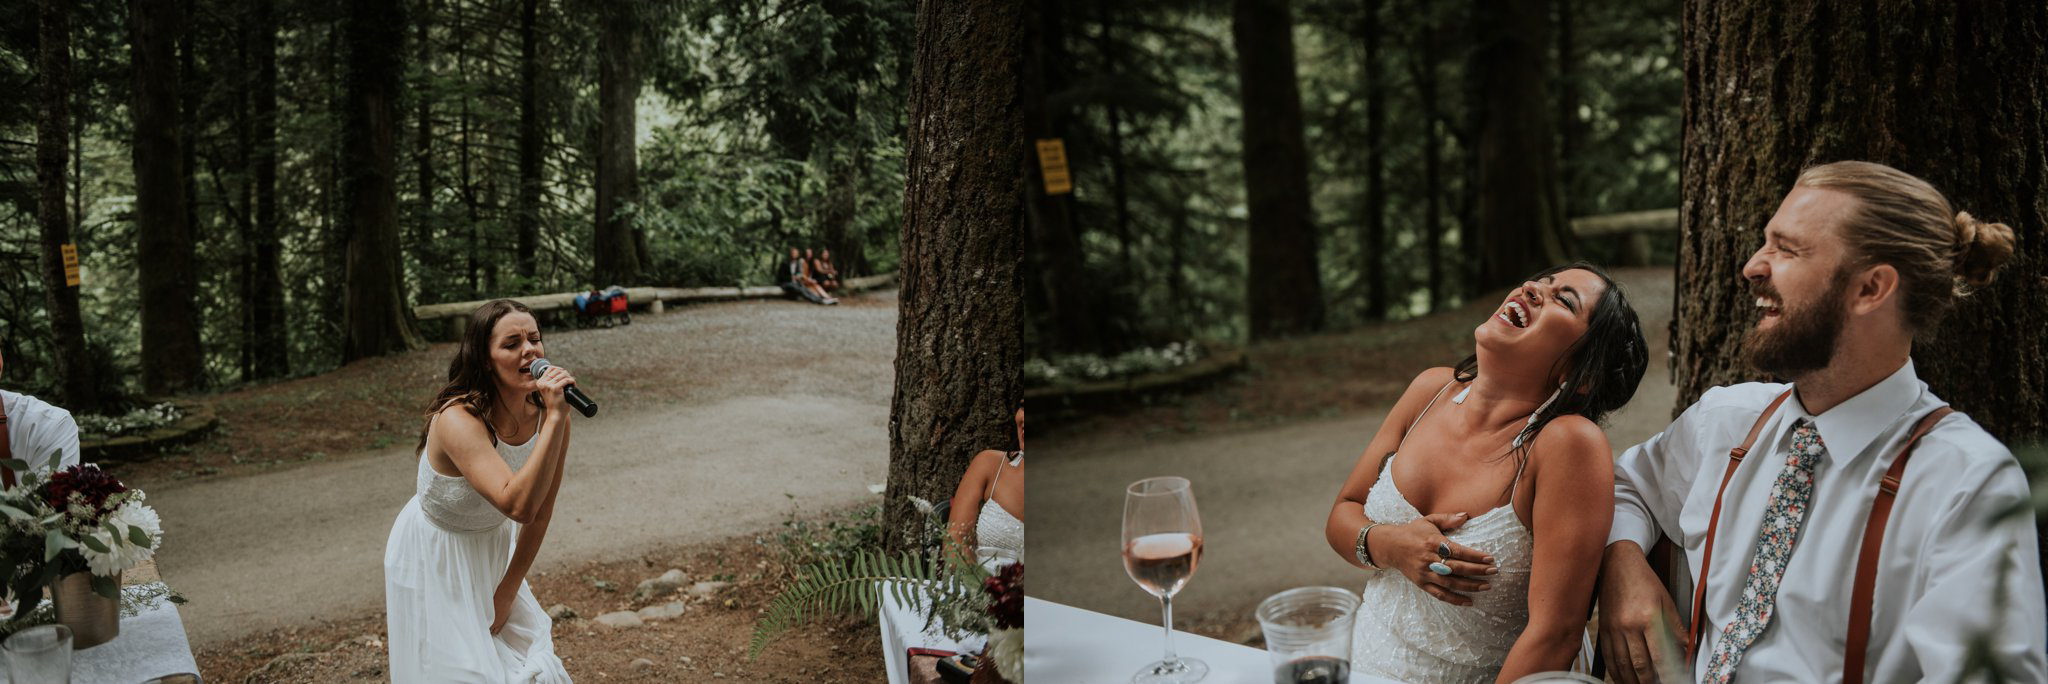 intimate-boho-campfire-wedding-shangri-la-on-the-green-seattle-wedding-photographer-caitlyn-nikula-photography-112.jpg